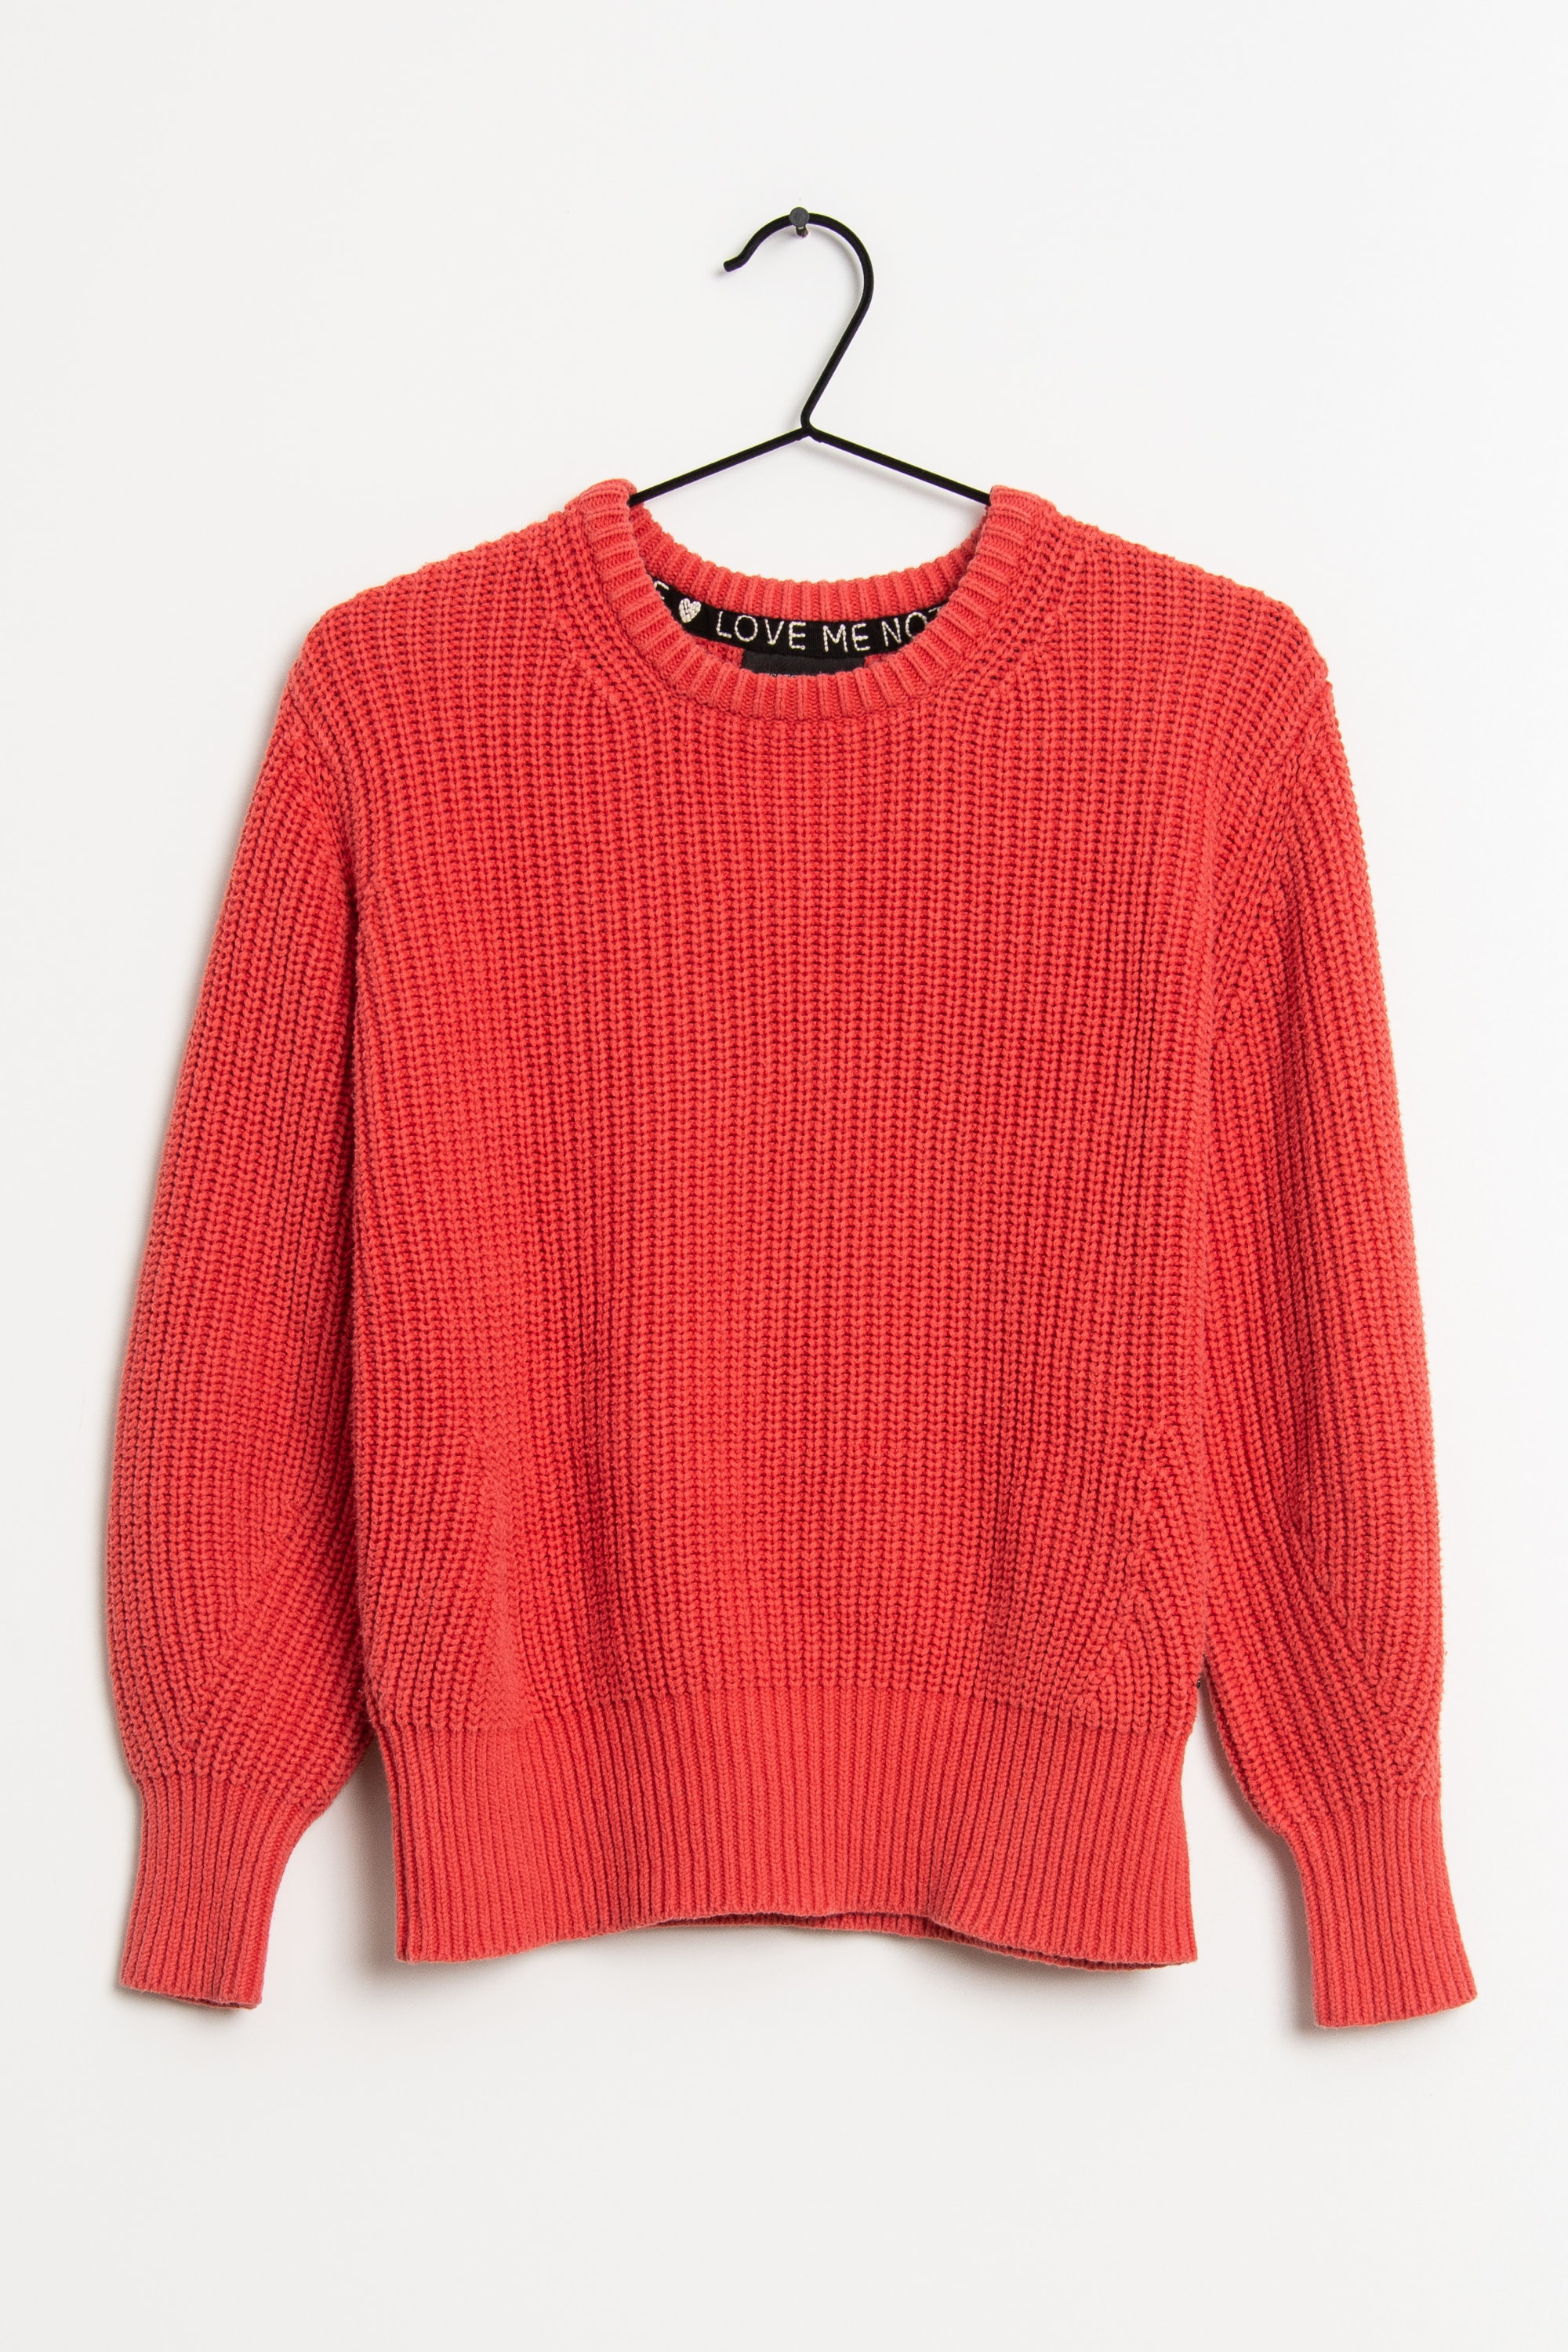 Scotch & Soda Strickpullover Rot Gr.S